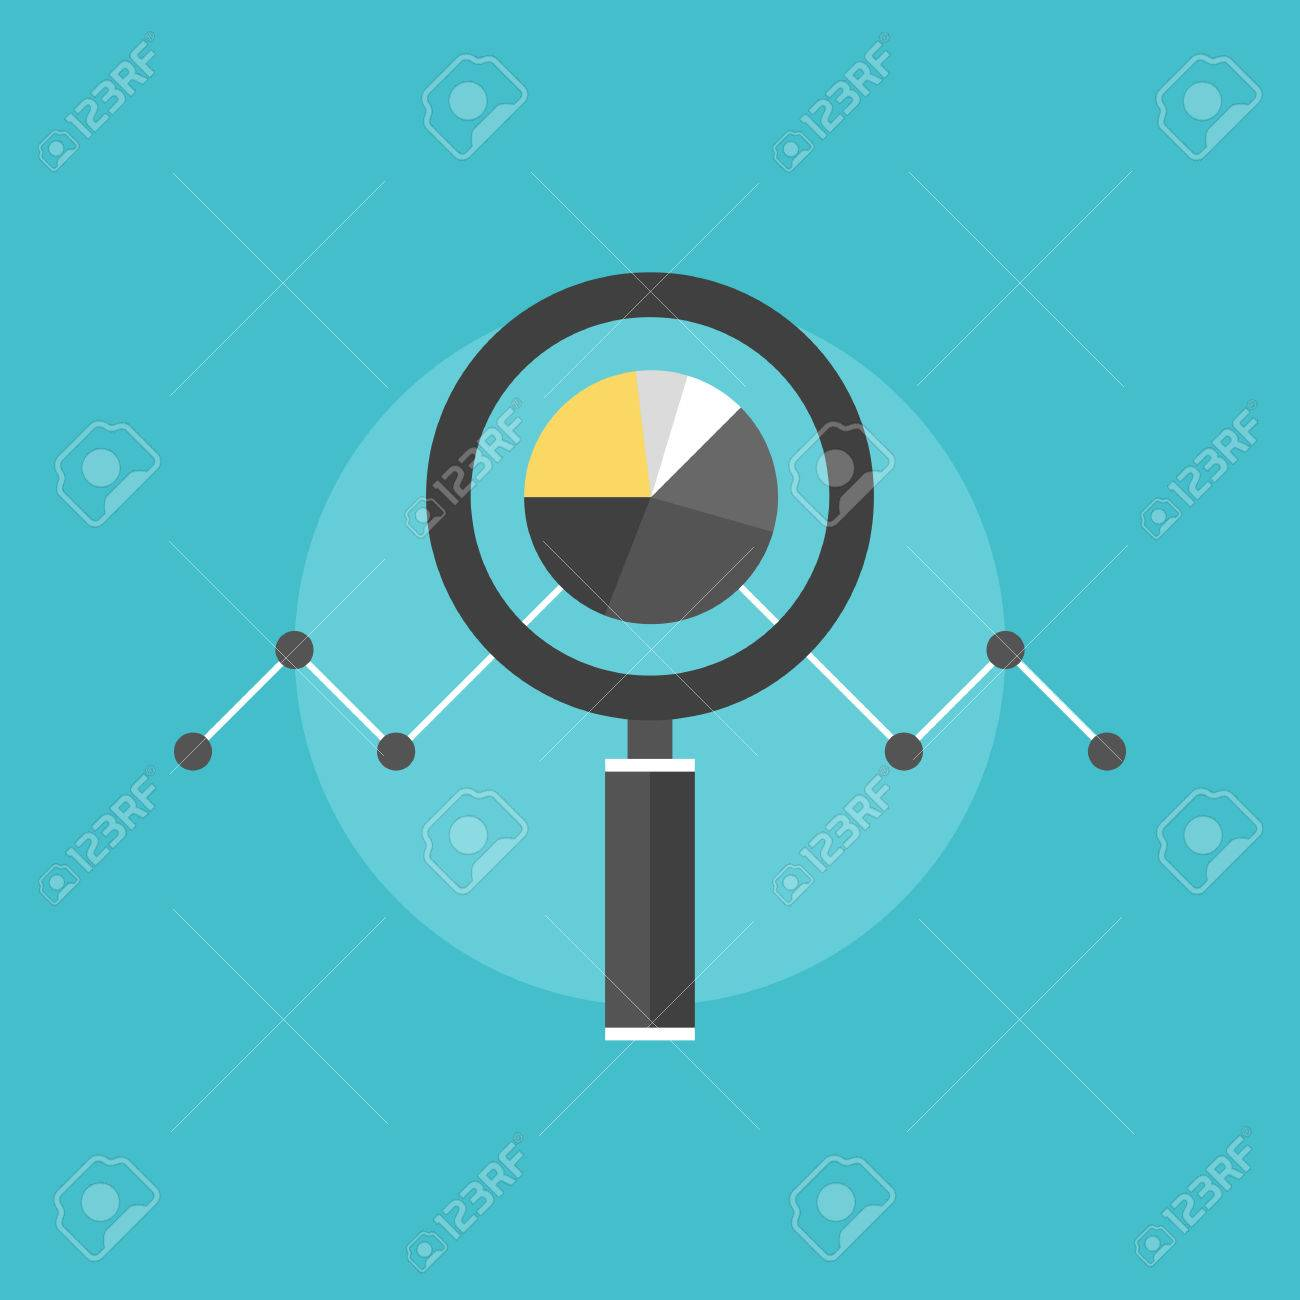 Marketing data analytics, analyzing statistics chart, magnifying glass with stock market graph figures. Flat icon modern design style vector illustration concept. - 33664106